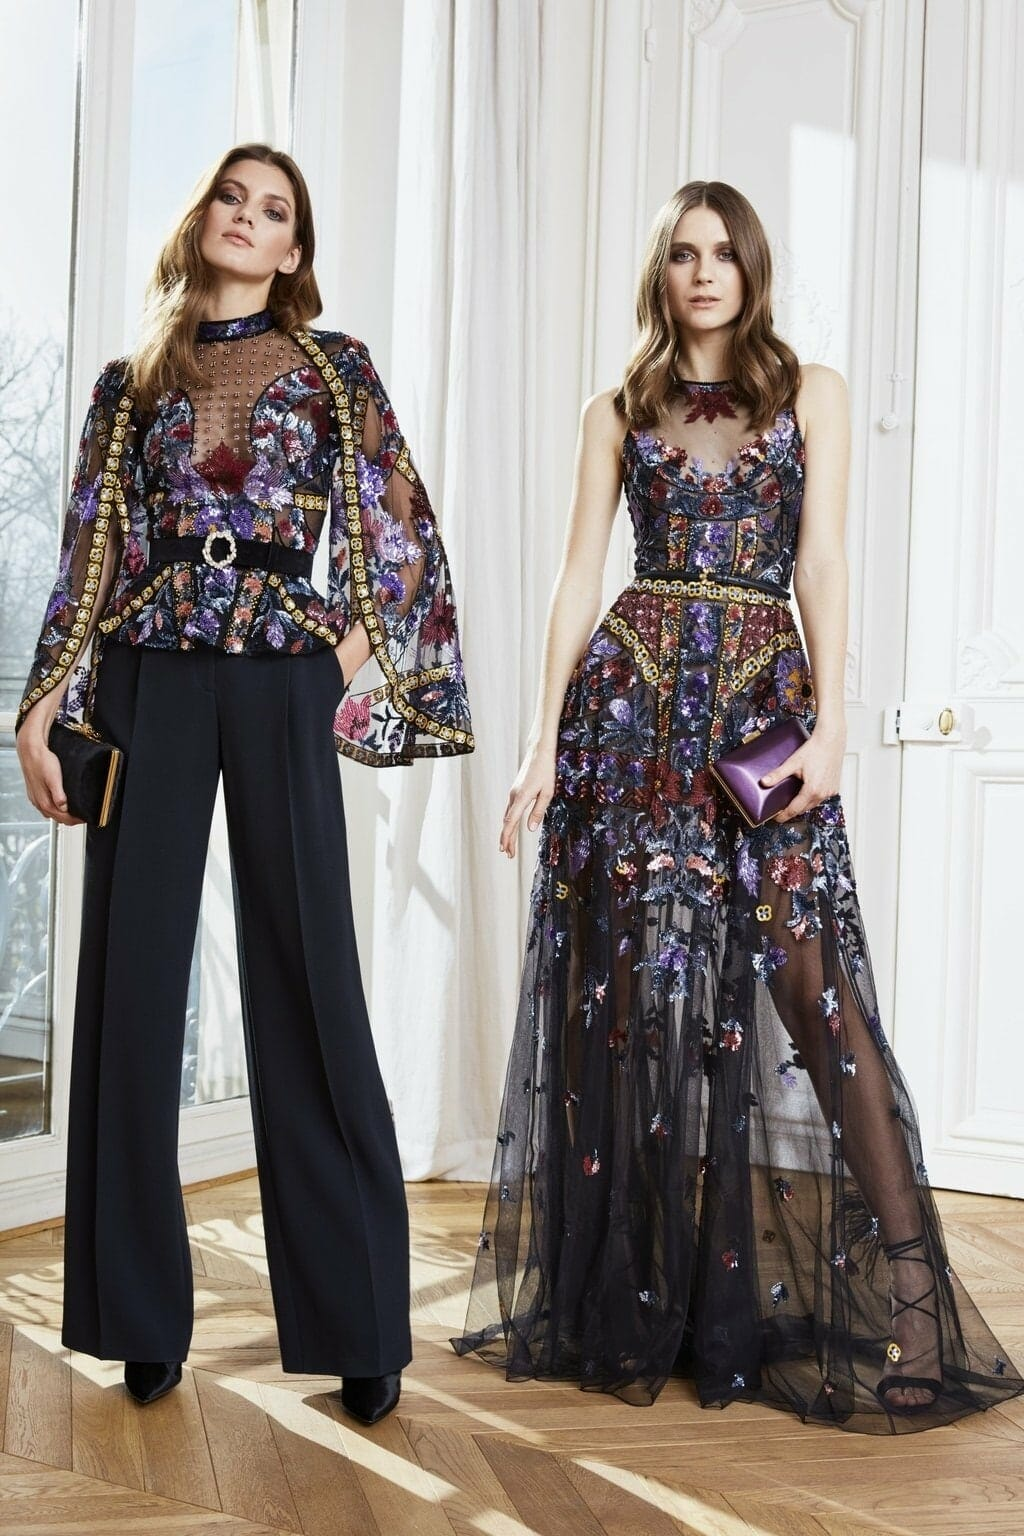 Zuhair Murad Fall-Winter 2020-2021 Paris. RUNWAY MAGAZINE ® Collections. RUNWAY NOW / RUNWAY NEW